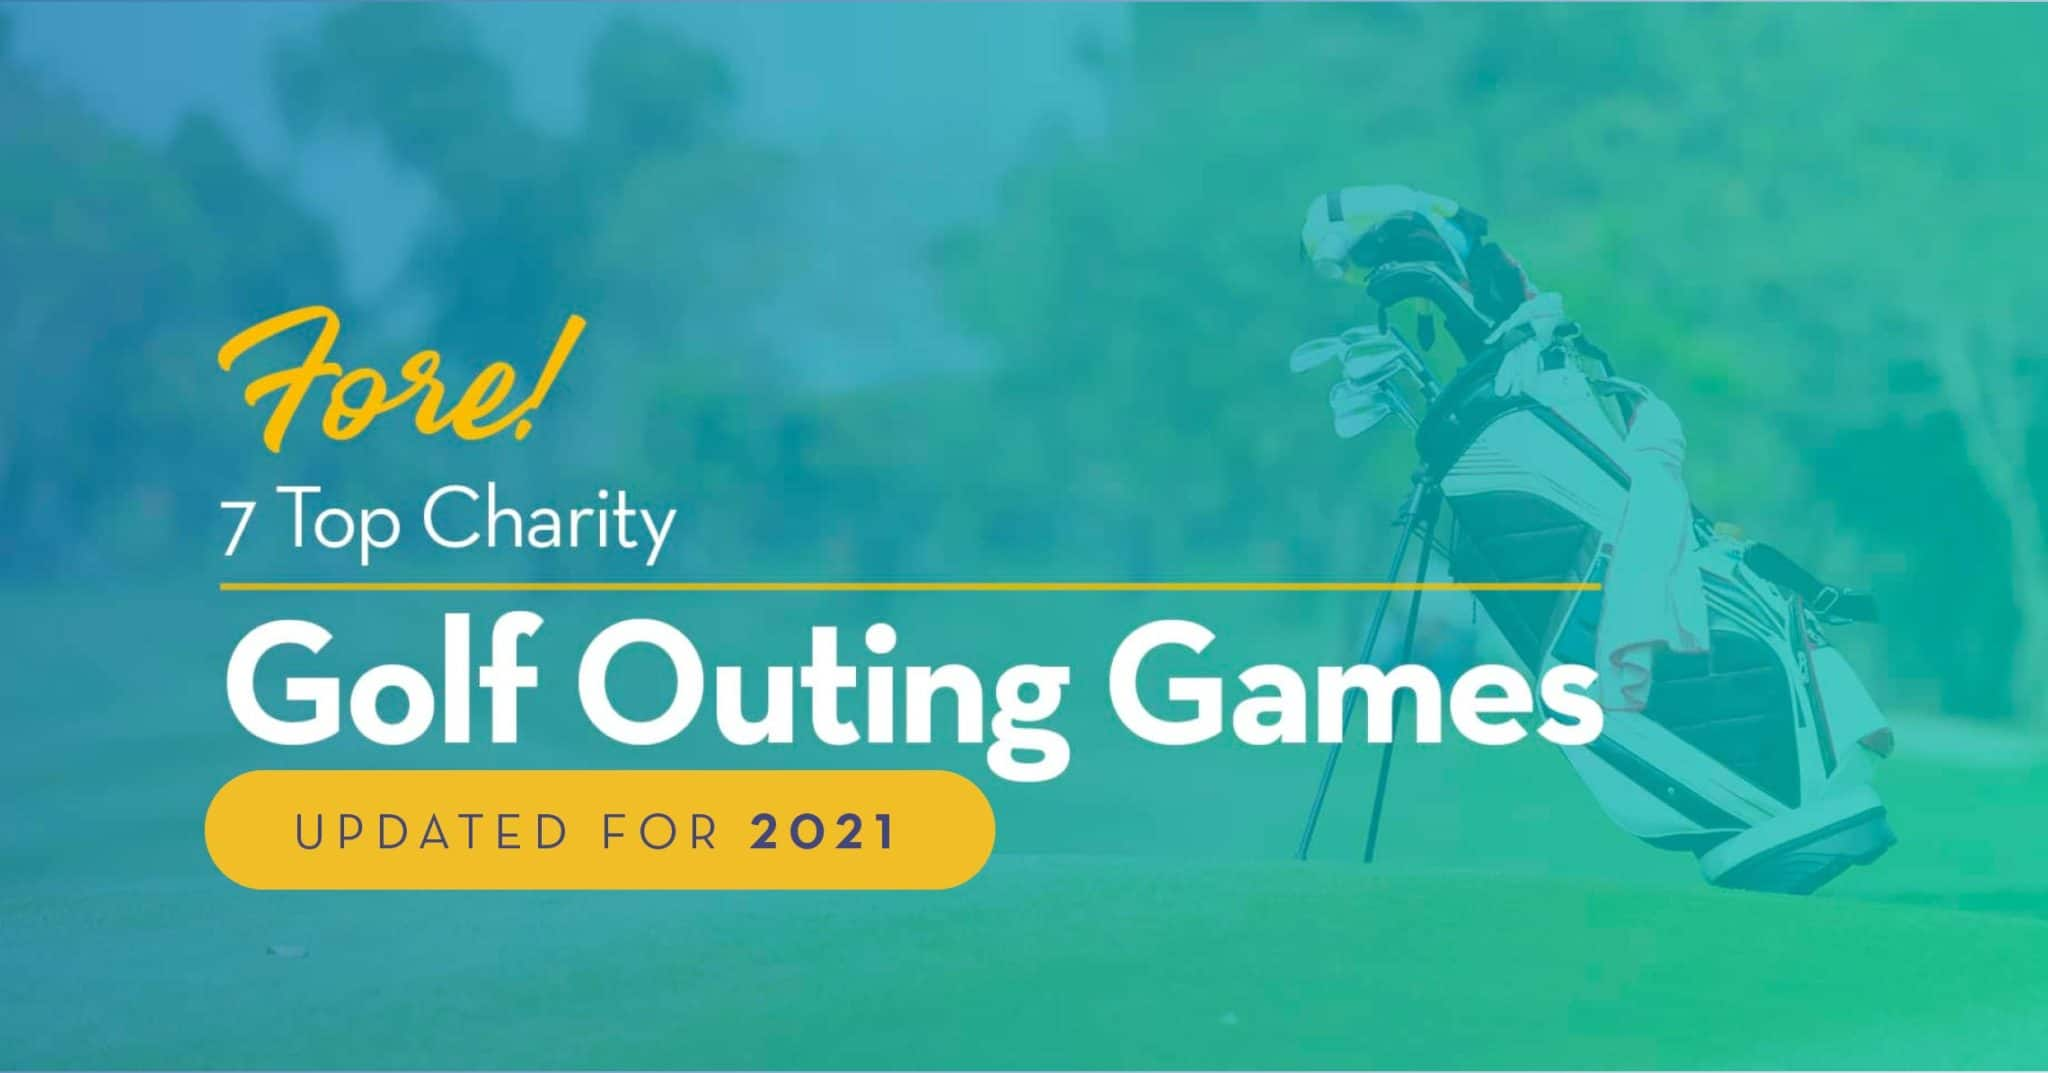 7 Charity Golf Outing Games for 2021